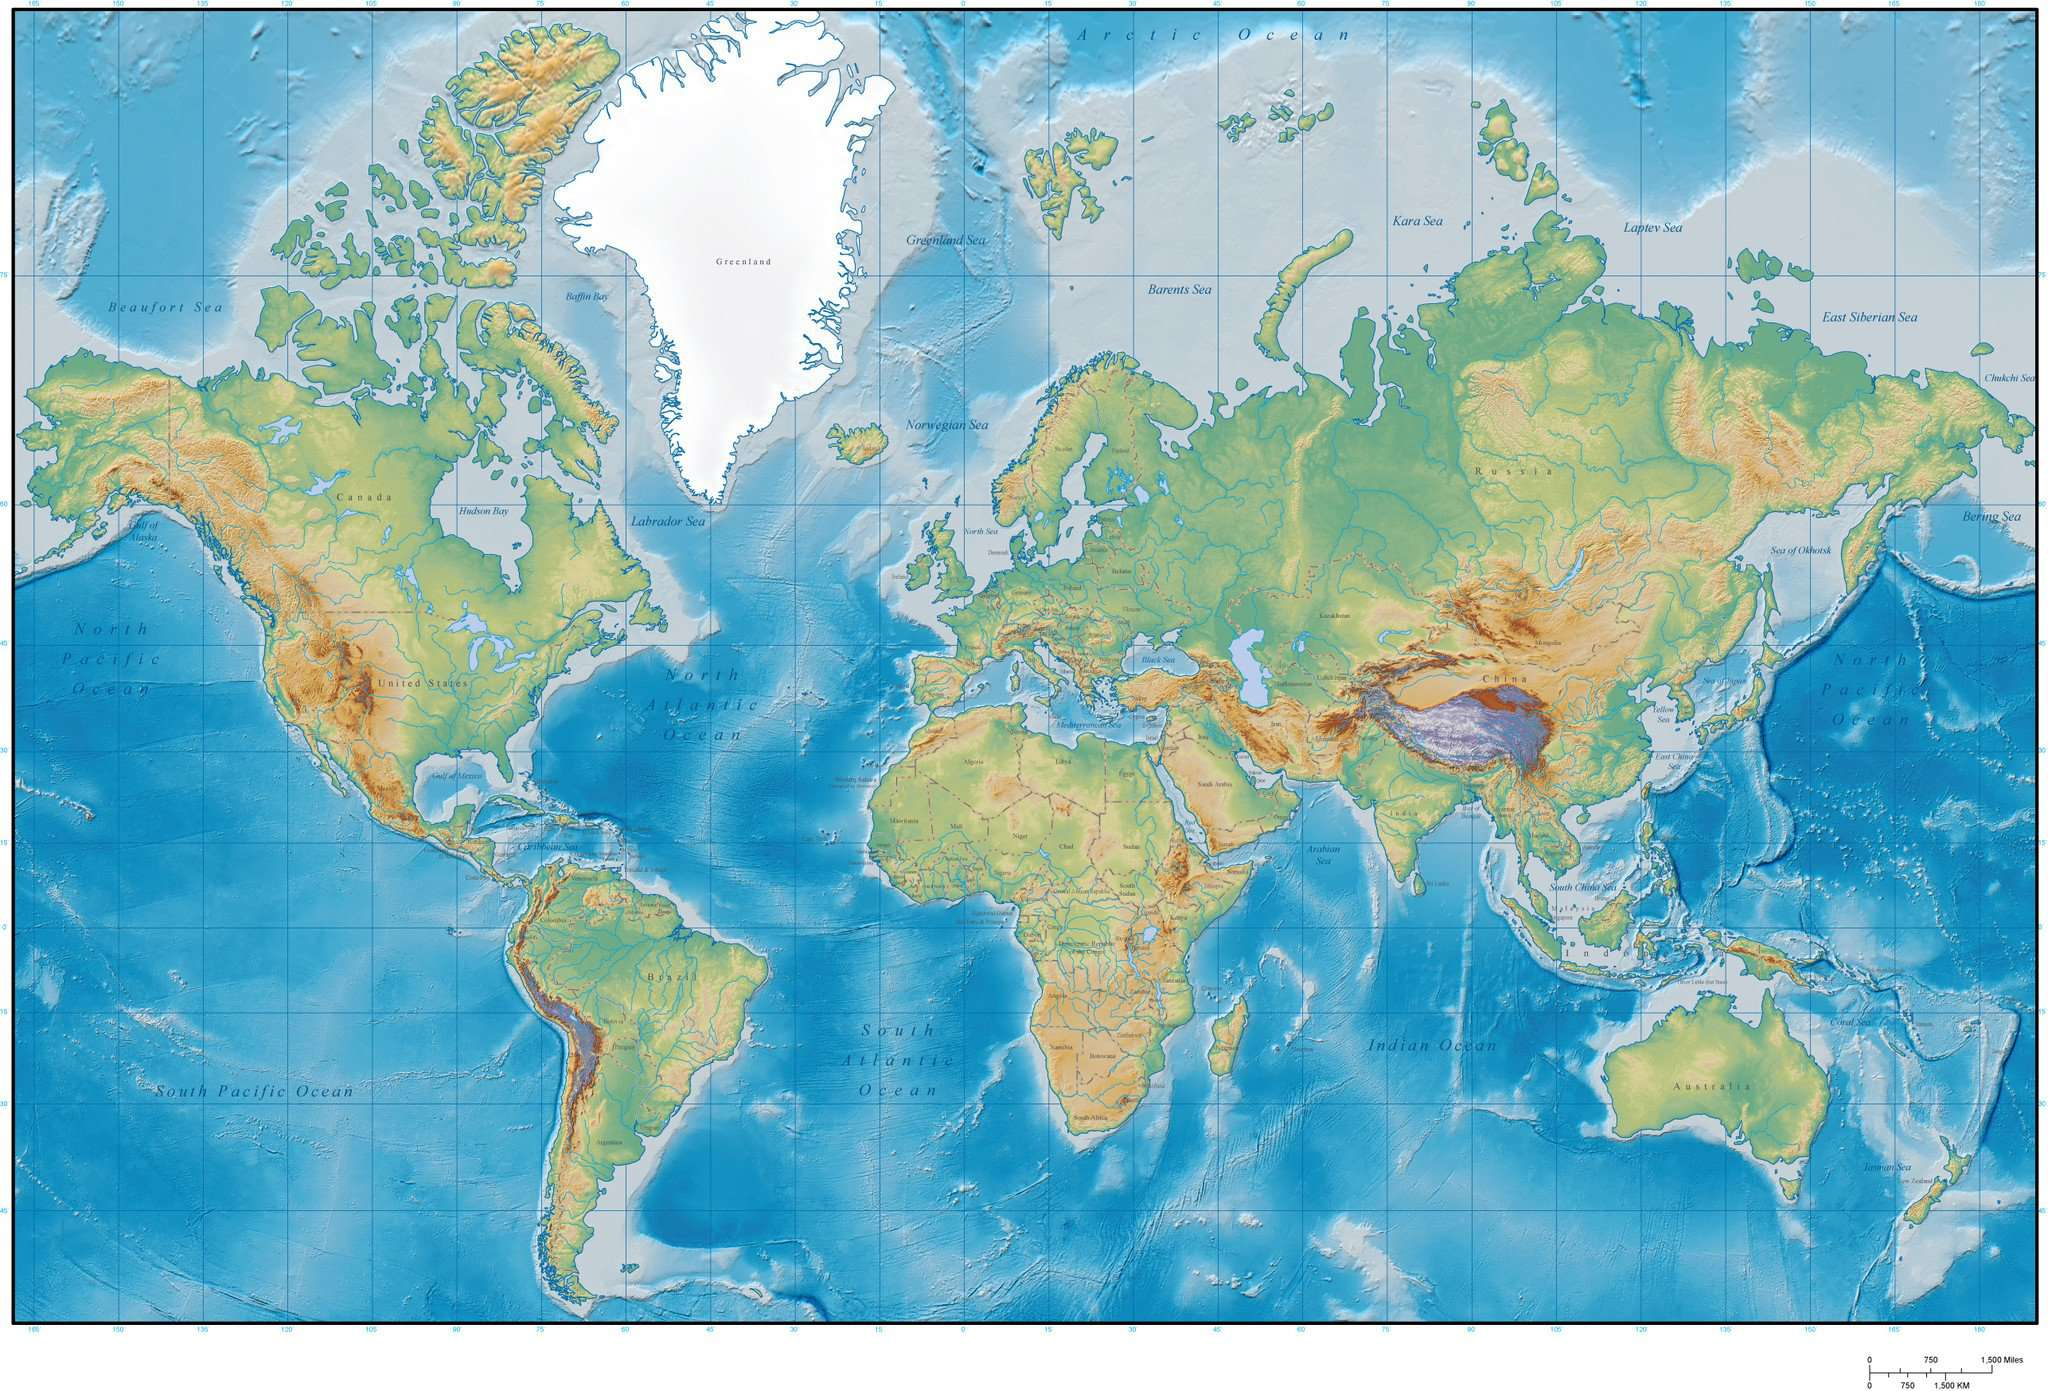 Terrain World Map - 17 x 11 Inch Mercator Projection with Country Borders on conformal map, equirectangular projection, goodes interrupted map, cylindrical projection map, azimuthal projection map, stereographic projection, goode homolosine projection, transverse mercator projection, peters projection map, stereographic projection map, lambert azimuthal equal-area projection, fuller projection map, azimuthal equidistant projection, flat earth map, winkel tripel projection map, albers projection map, cassini projection, homolosine projection map, cylindrical equal-area projection, goode's projection map, gnomonic projection, mollweide projection map, polyconic projection, gall–peters projection, winkel tripel projection, robinson projection, gnomonic projection map, isoline map, peterson projection map, polyconic projection map, mollweide projection, most common projection map, gerardus mercator, robinson map, sinusoidal projection, miller cylindrical projection, lambert conformal conic projection, flat plane projection map, azimuthal equidistant map, dymaxion map,